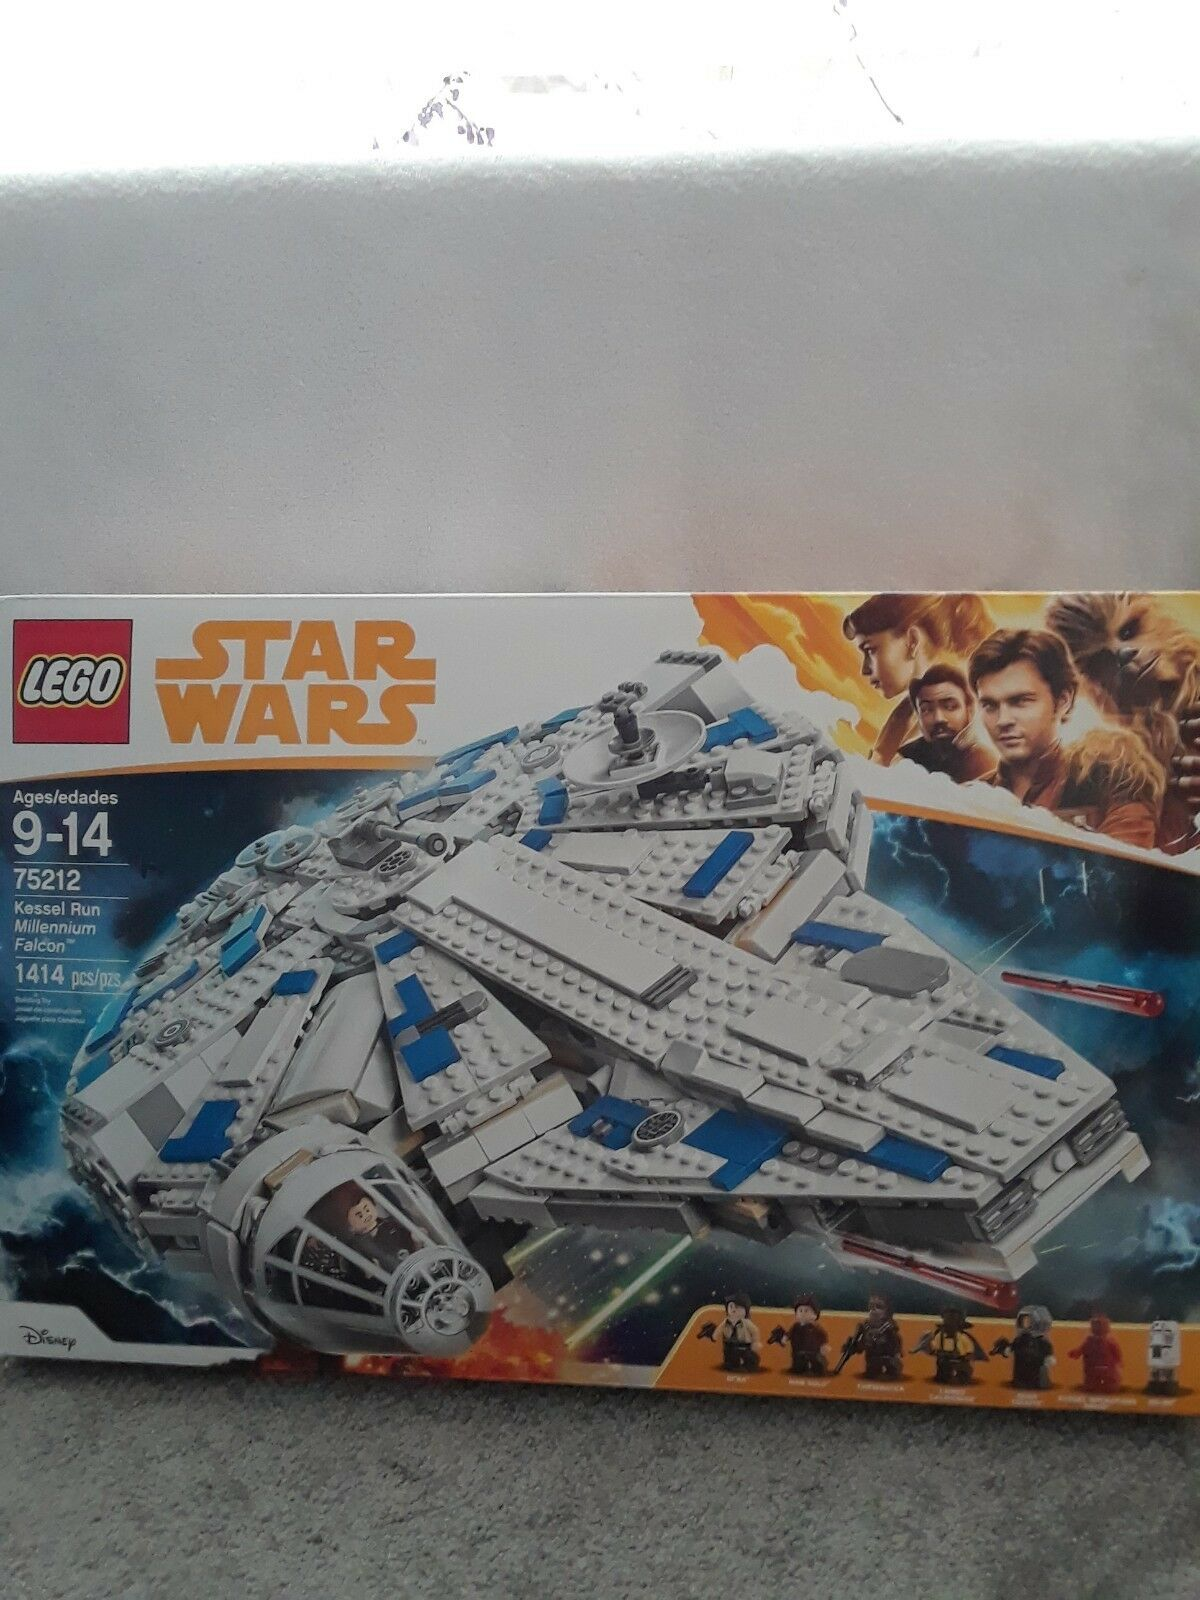 LEGO Star Wars Kessel Run Millennium Falcon 75212 Han Solo 1414 pcs NEW SEALED